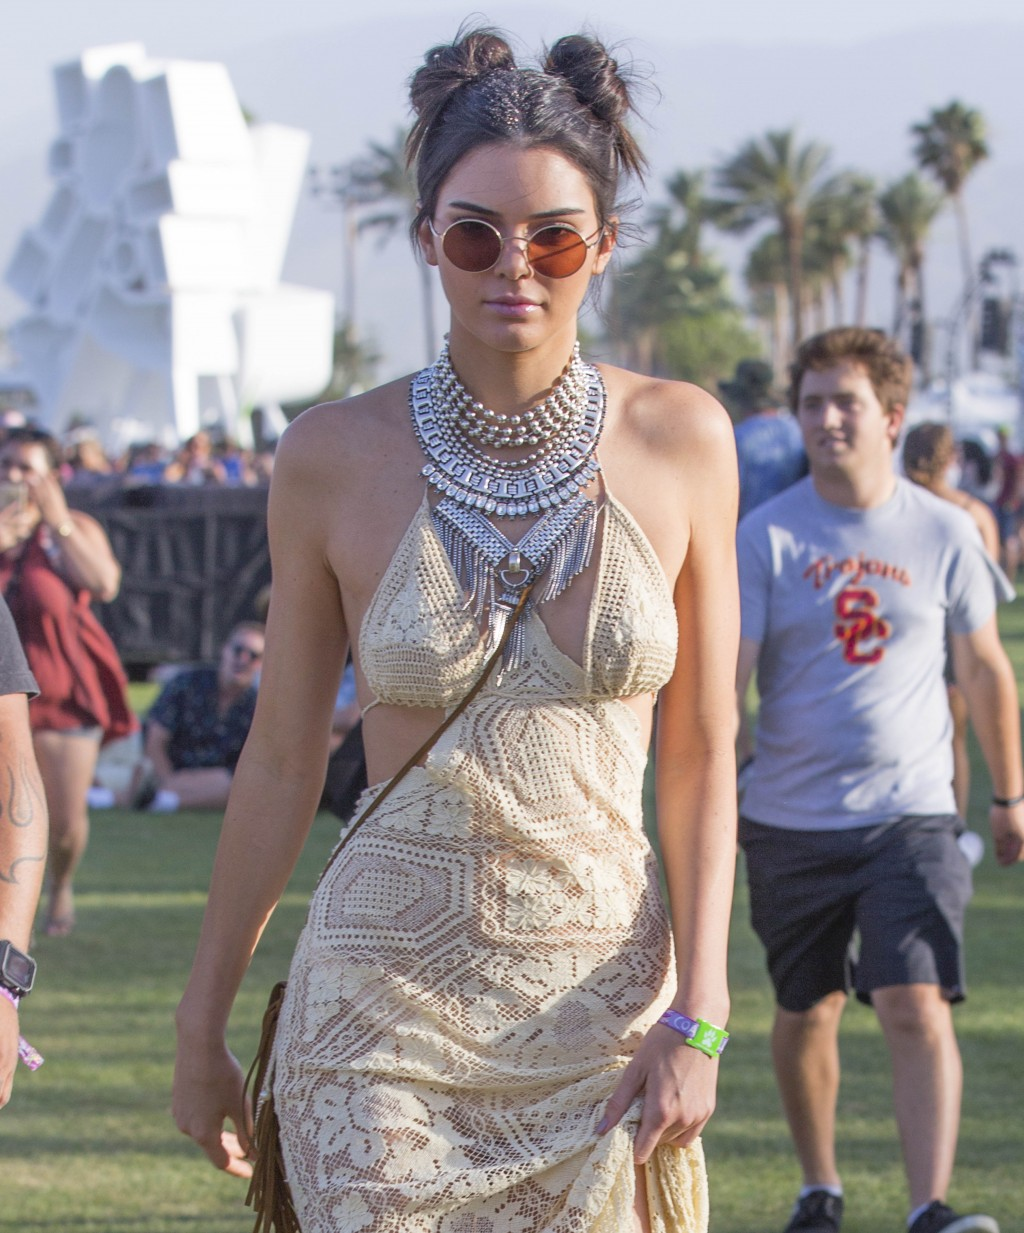 Kendal Jenner Arrive to the Coachella Music Festival in a stunning Beige Lace Dress in Indio California